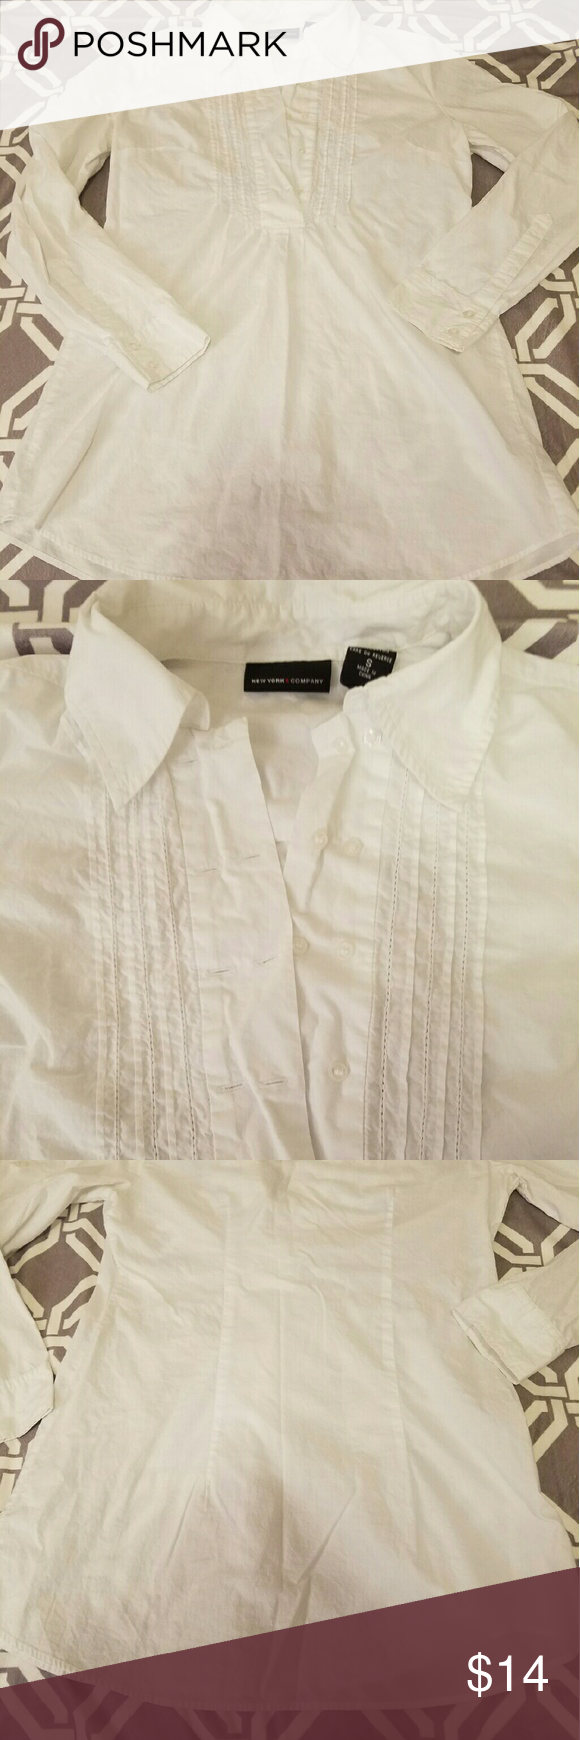 """New York and Co Cotton Shirt Love this shirt. I wore with fitted pants. This is long, 28"""". Looks great with skinny pants or leggings. No flaws. In euc. Size small. Great work wear New York & Company Tops"""